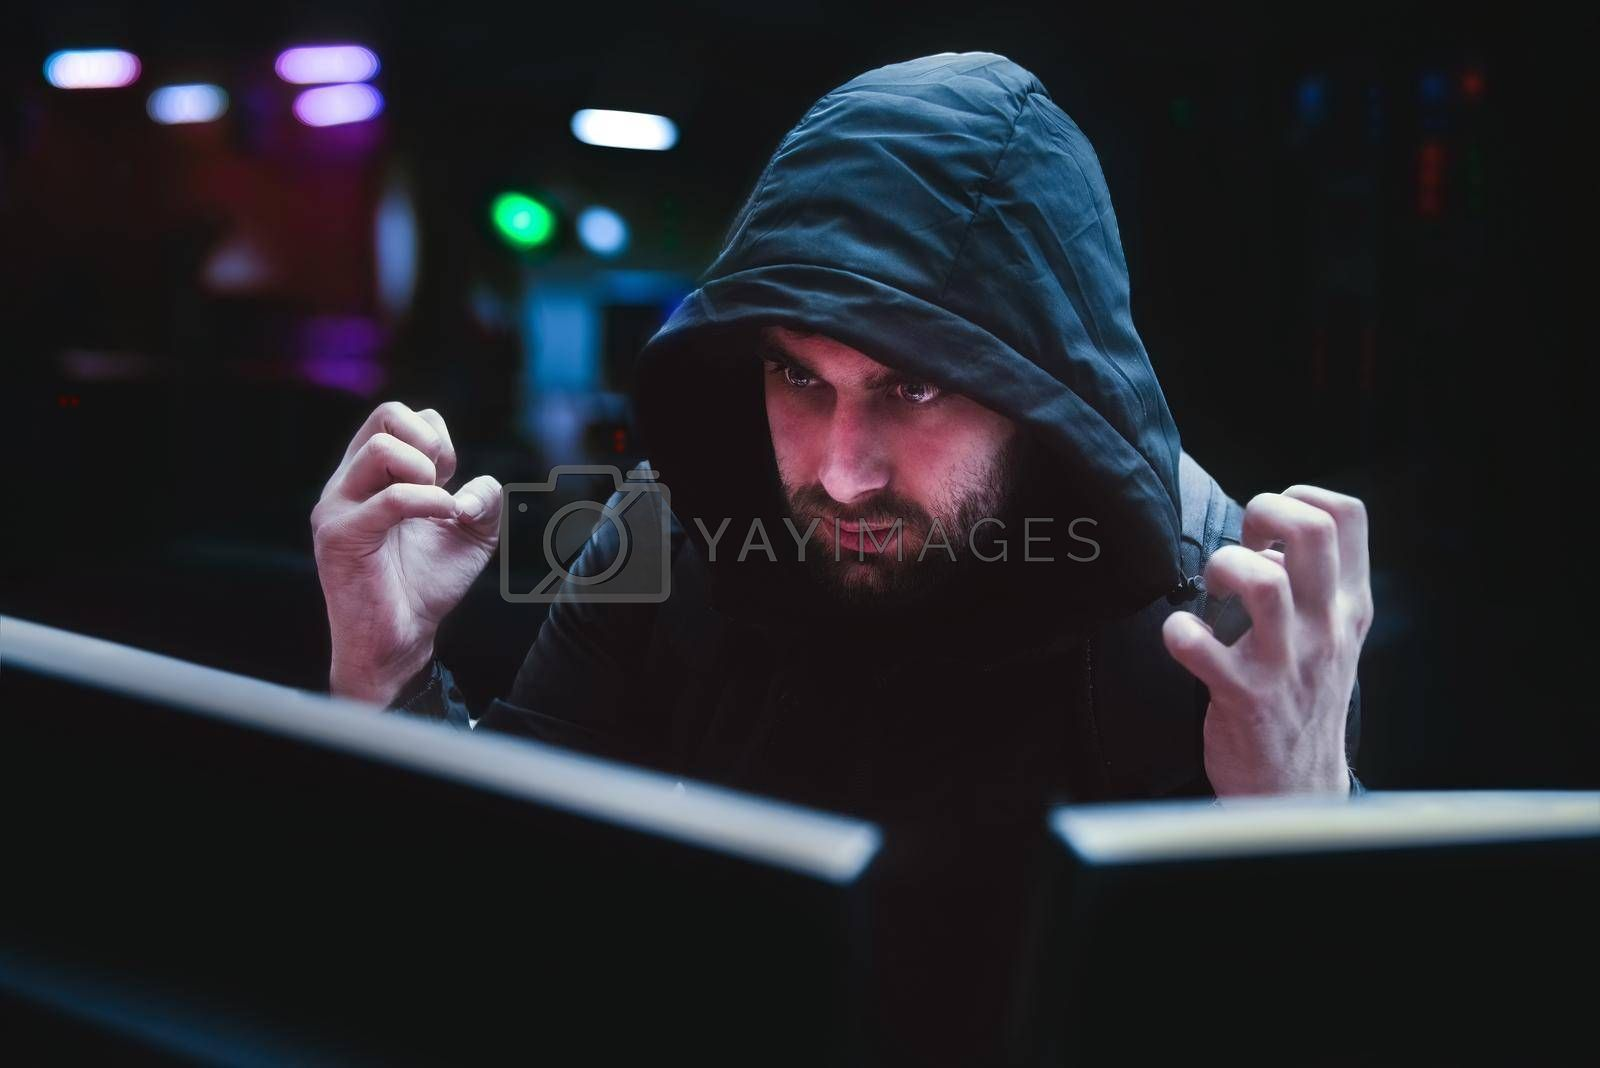 Royalty free image of A male hacker in hood experiences angry emotions over a failed hack, the concept of a hack. by Nickstock